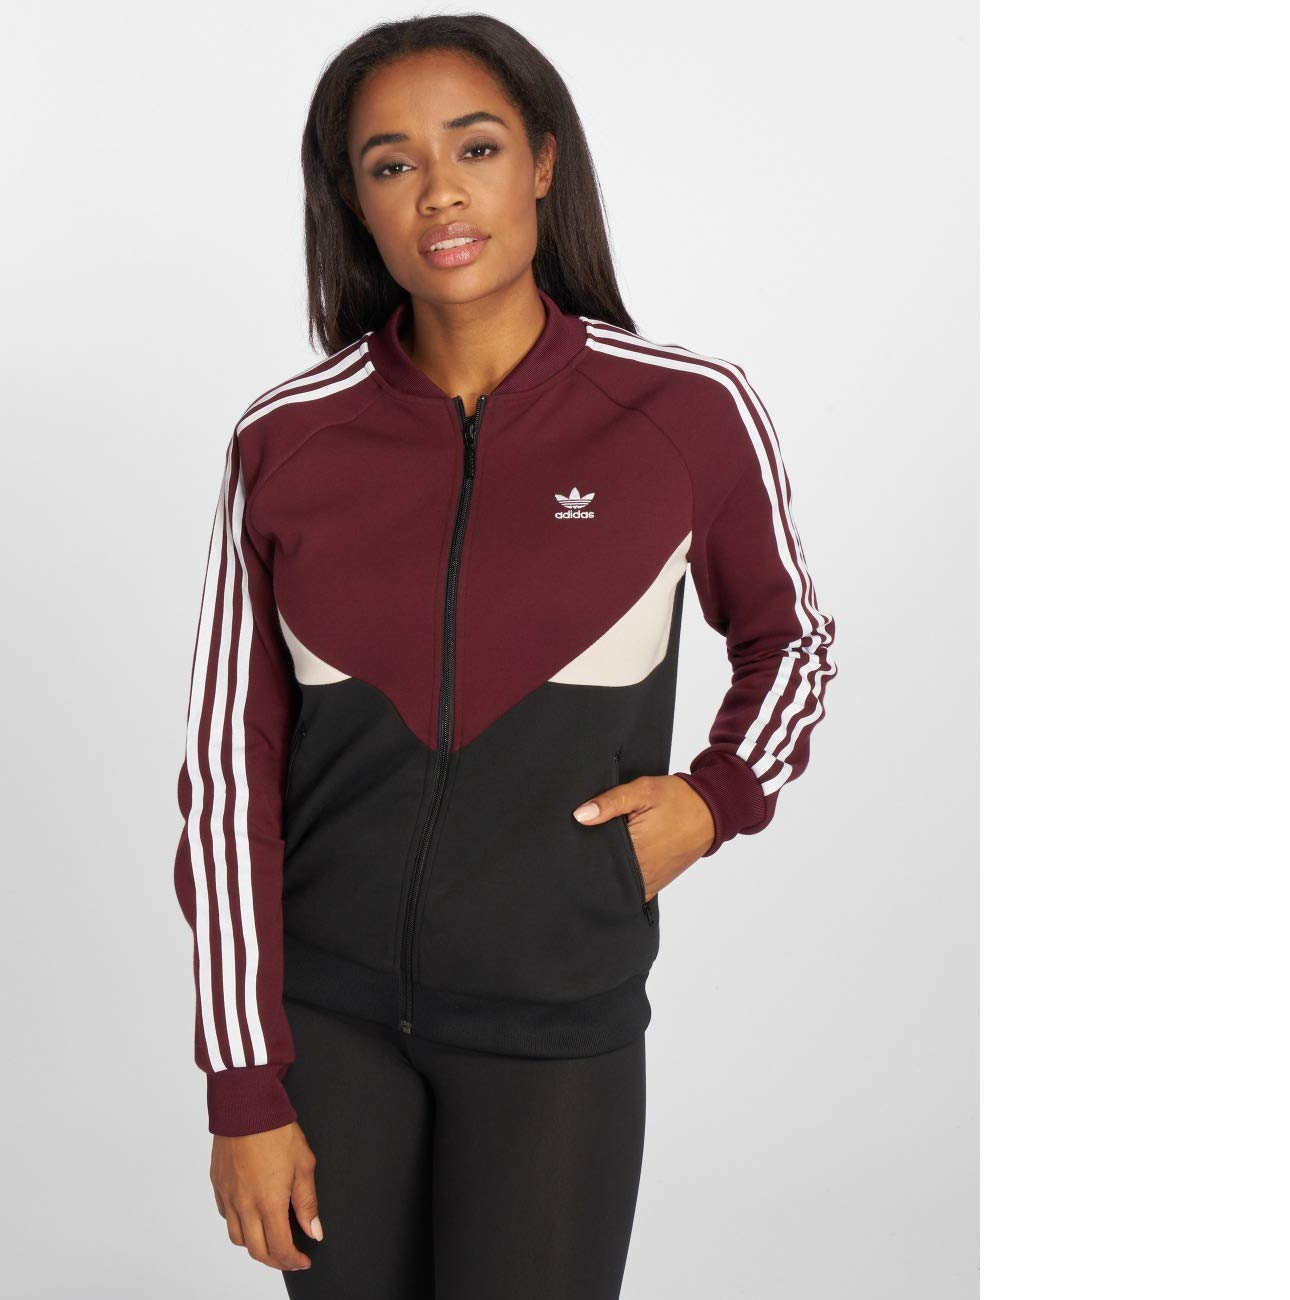 6fa43e8cd9ca Adidas CLRDO Superstar Jacke Damen 34 - XS S  Amazon.de  Sport   Freizeit